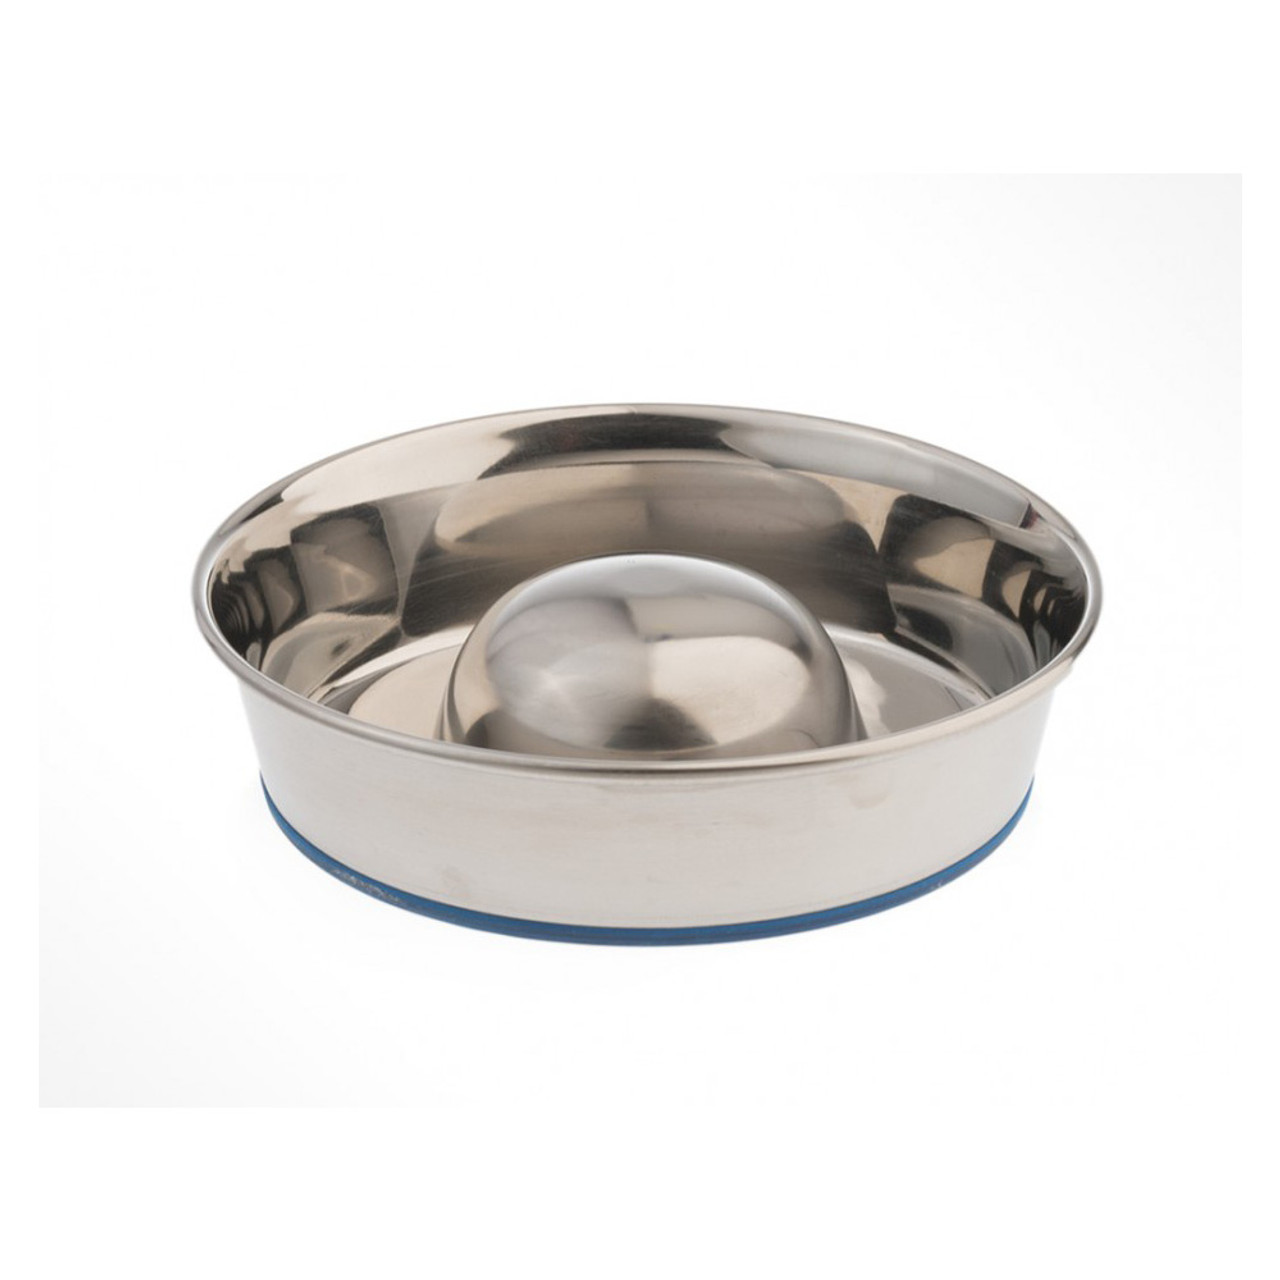 OurPets Premium Rubber-Bonded Stainless Steel Slow Feed Dog Bowl